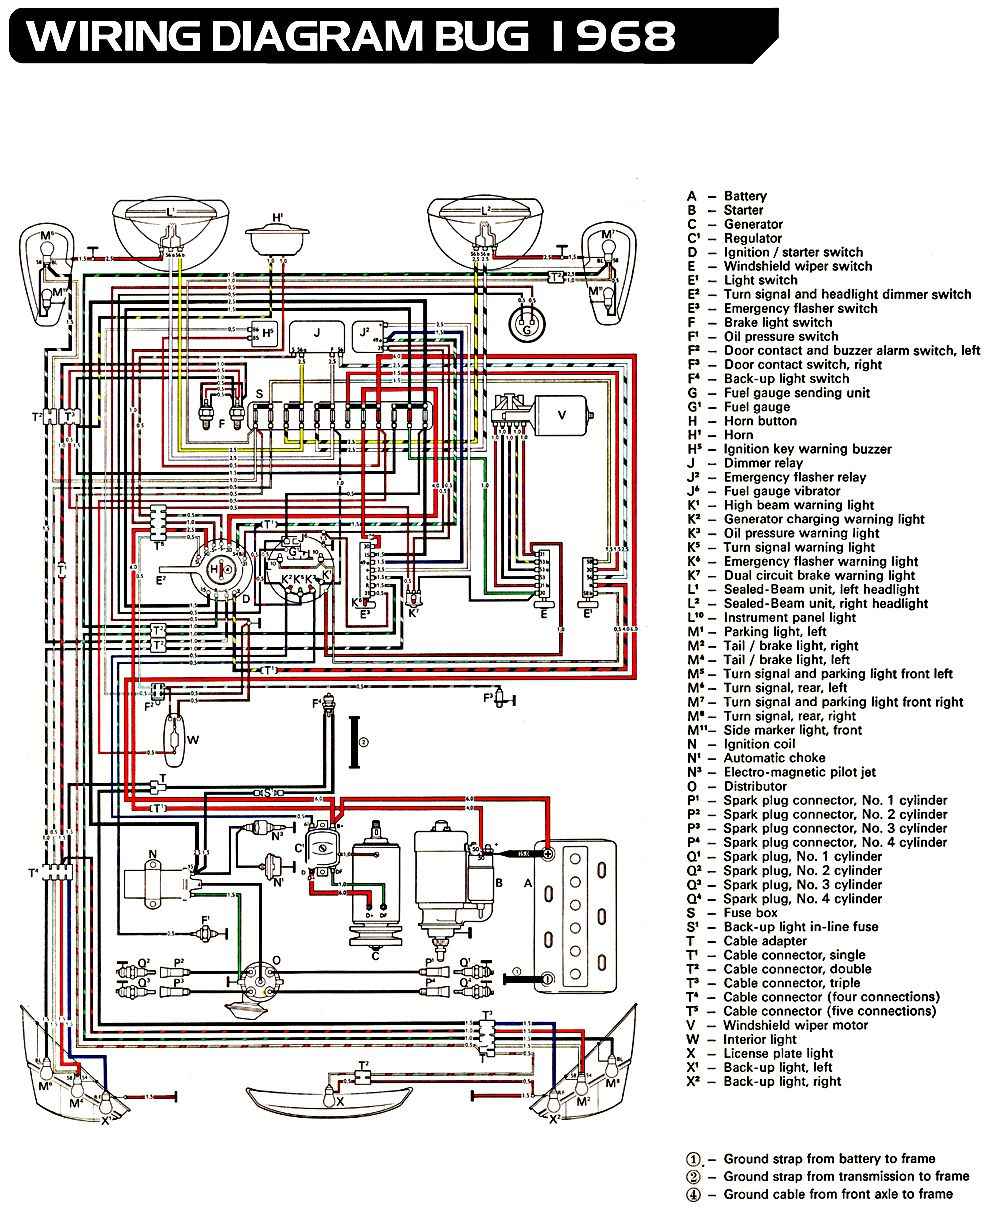 small resolution of 1965 vw bug fuse block diagram wiring diagram used 1965 vw bug fuse block diagram